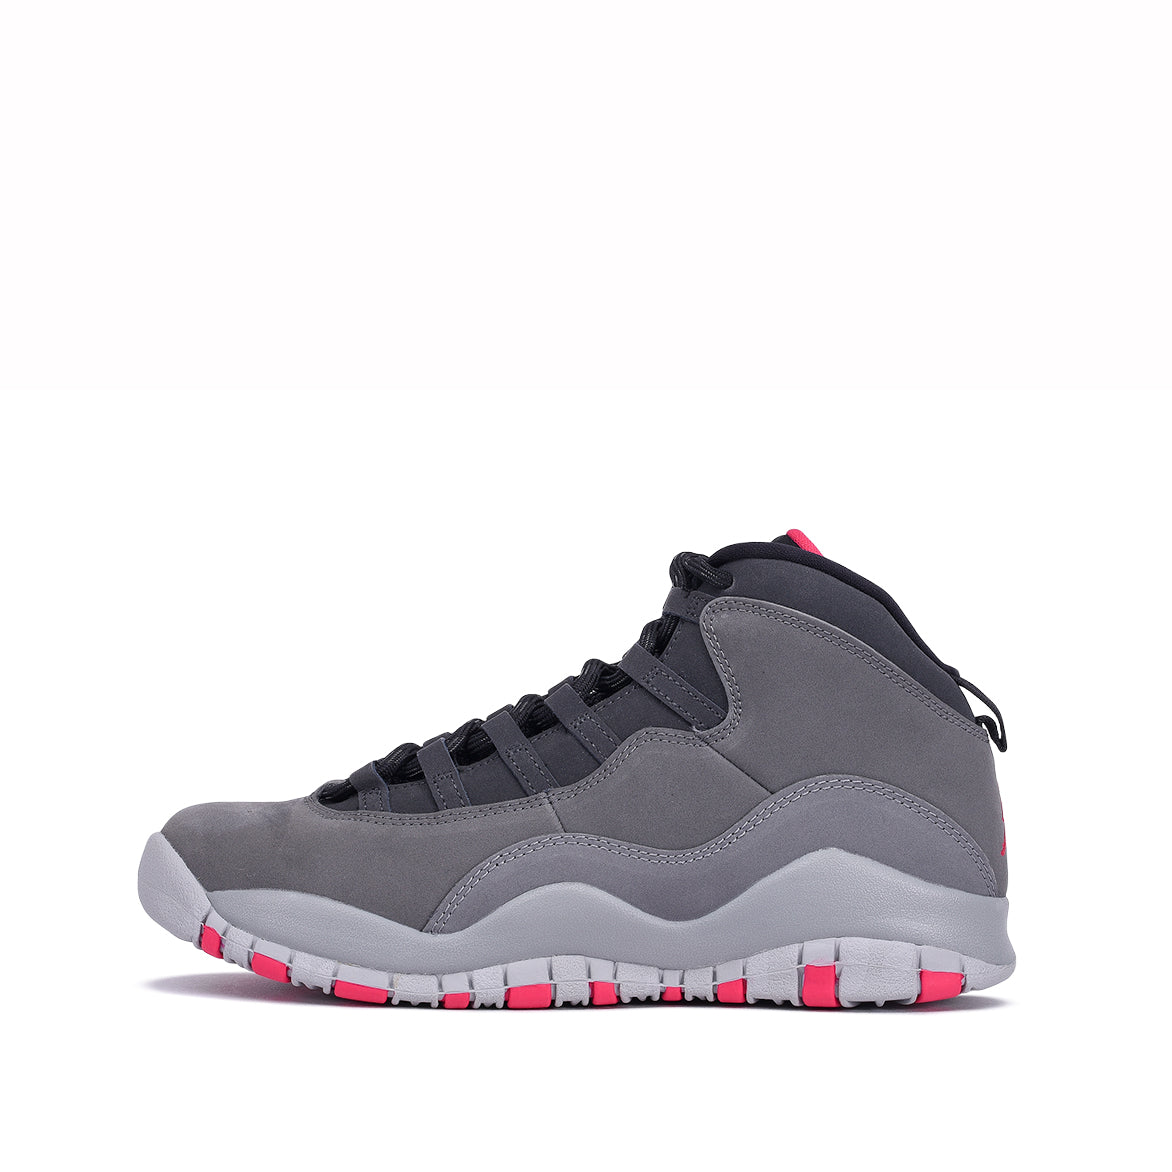 20bb100a7f0 ... good air jordan 10 retro gs dark smoke 34872 031d2